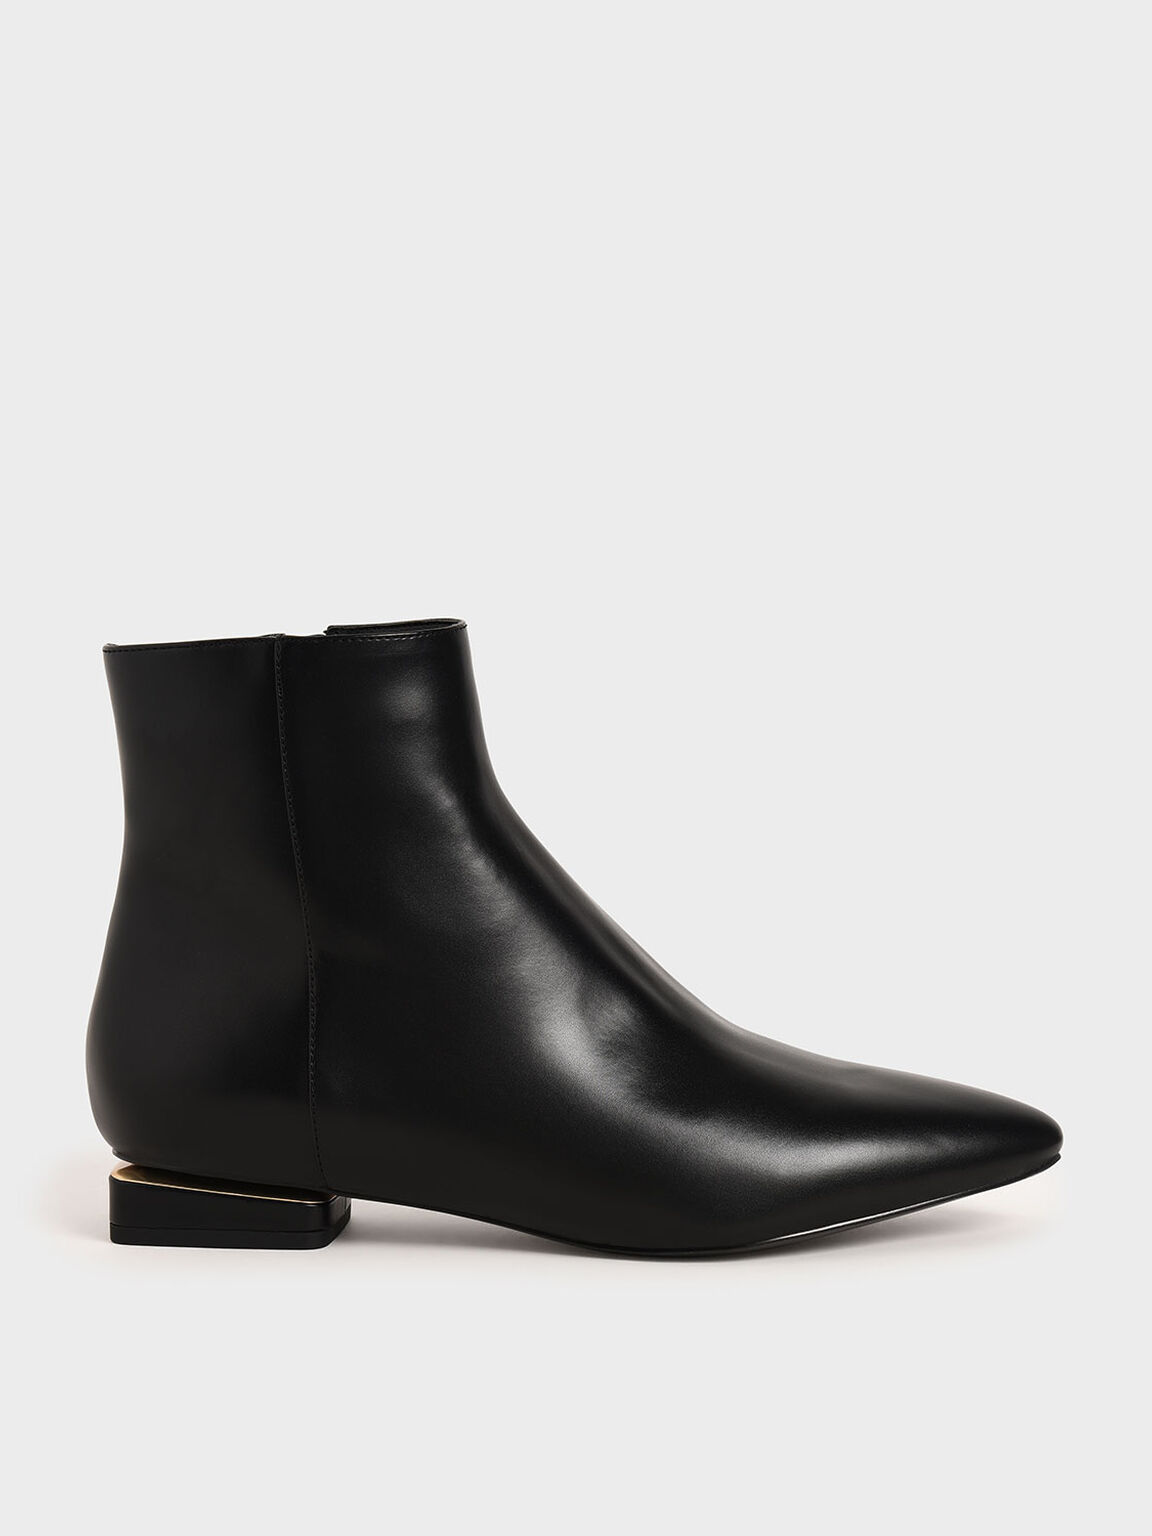 Metallic Accent Ankle Boots, Black, hi-res